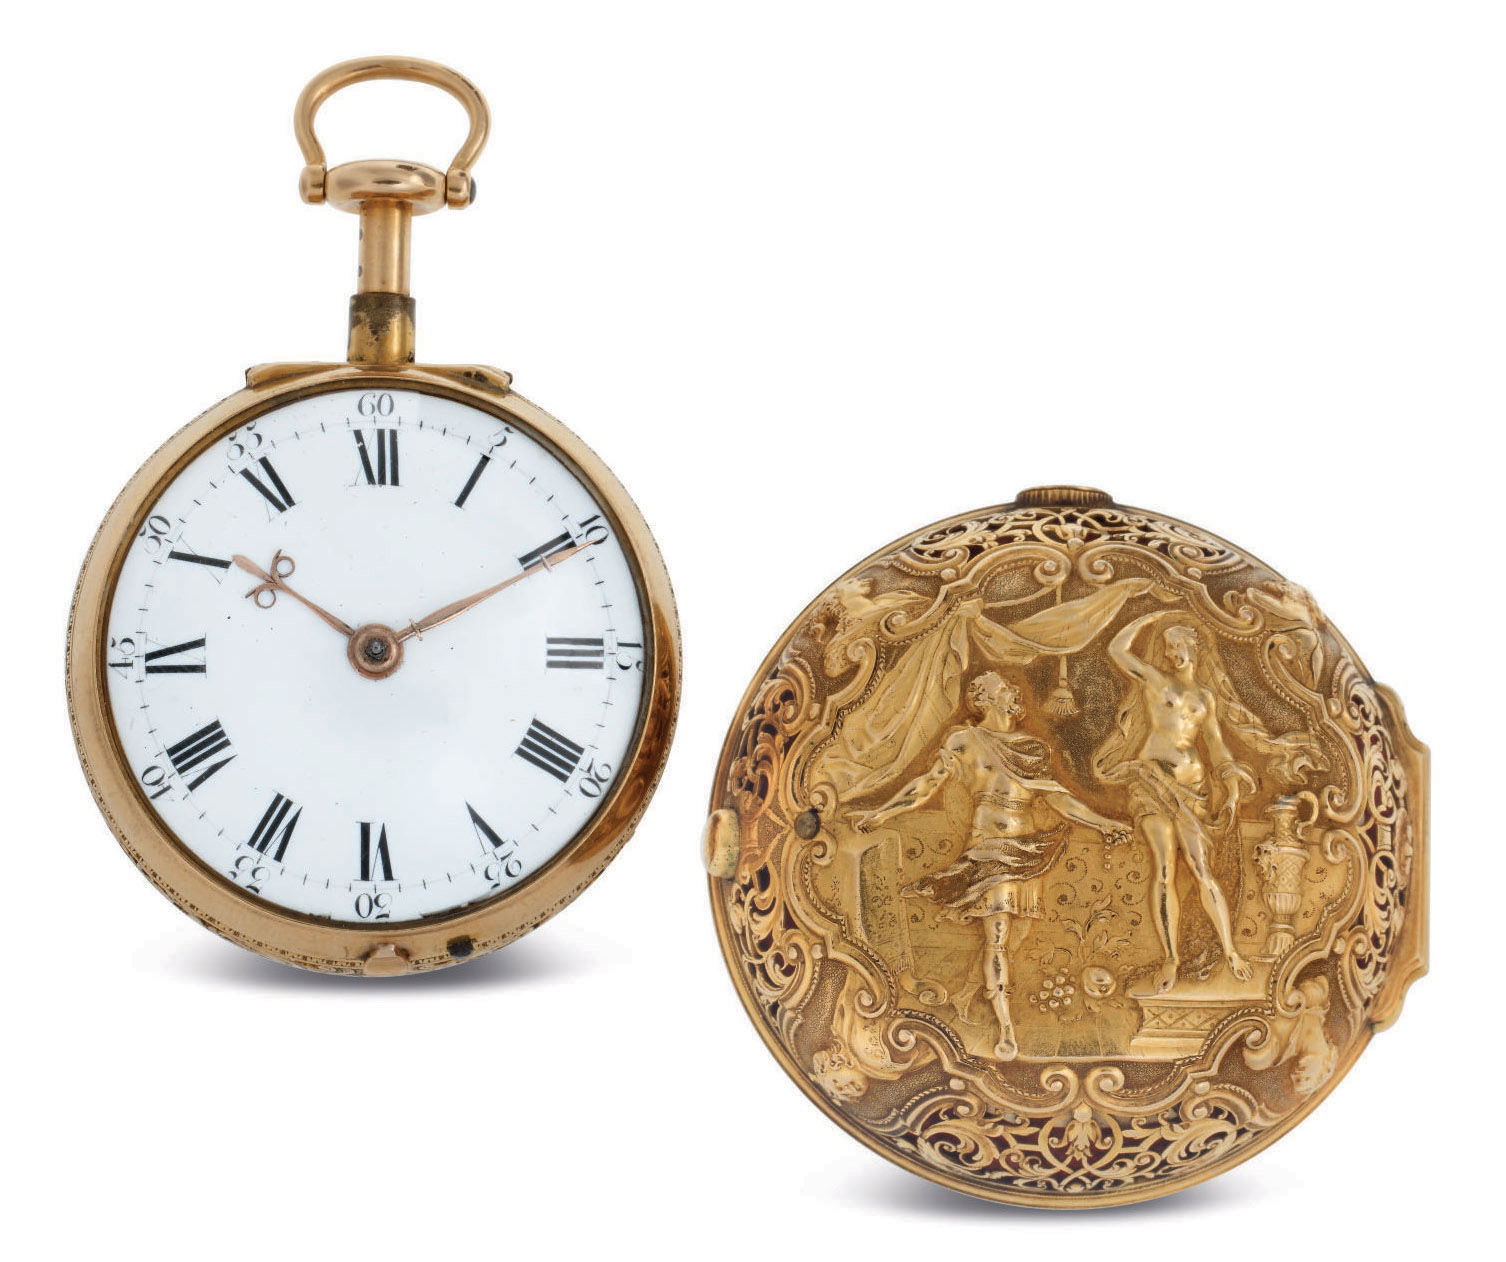 QUARE & HORSEMAN. A VERY FINE 18K GOLD REPOUSSÉE QUARTER REPEATING PAIR CASE VERGE WATCH